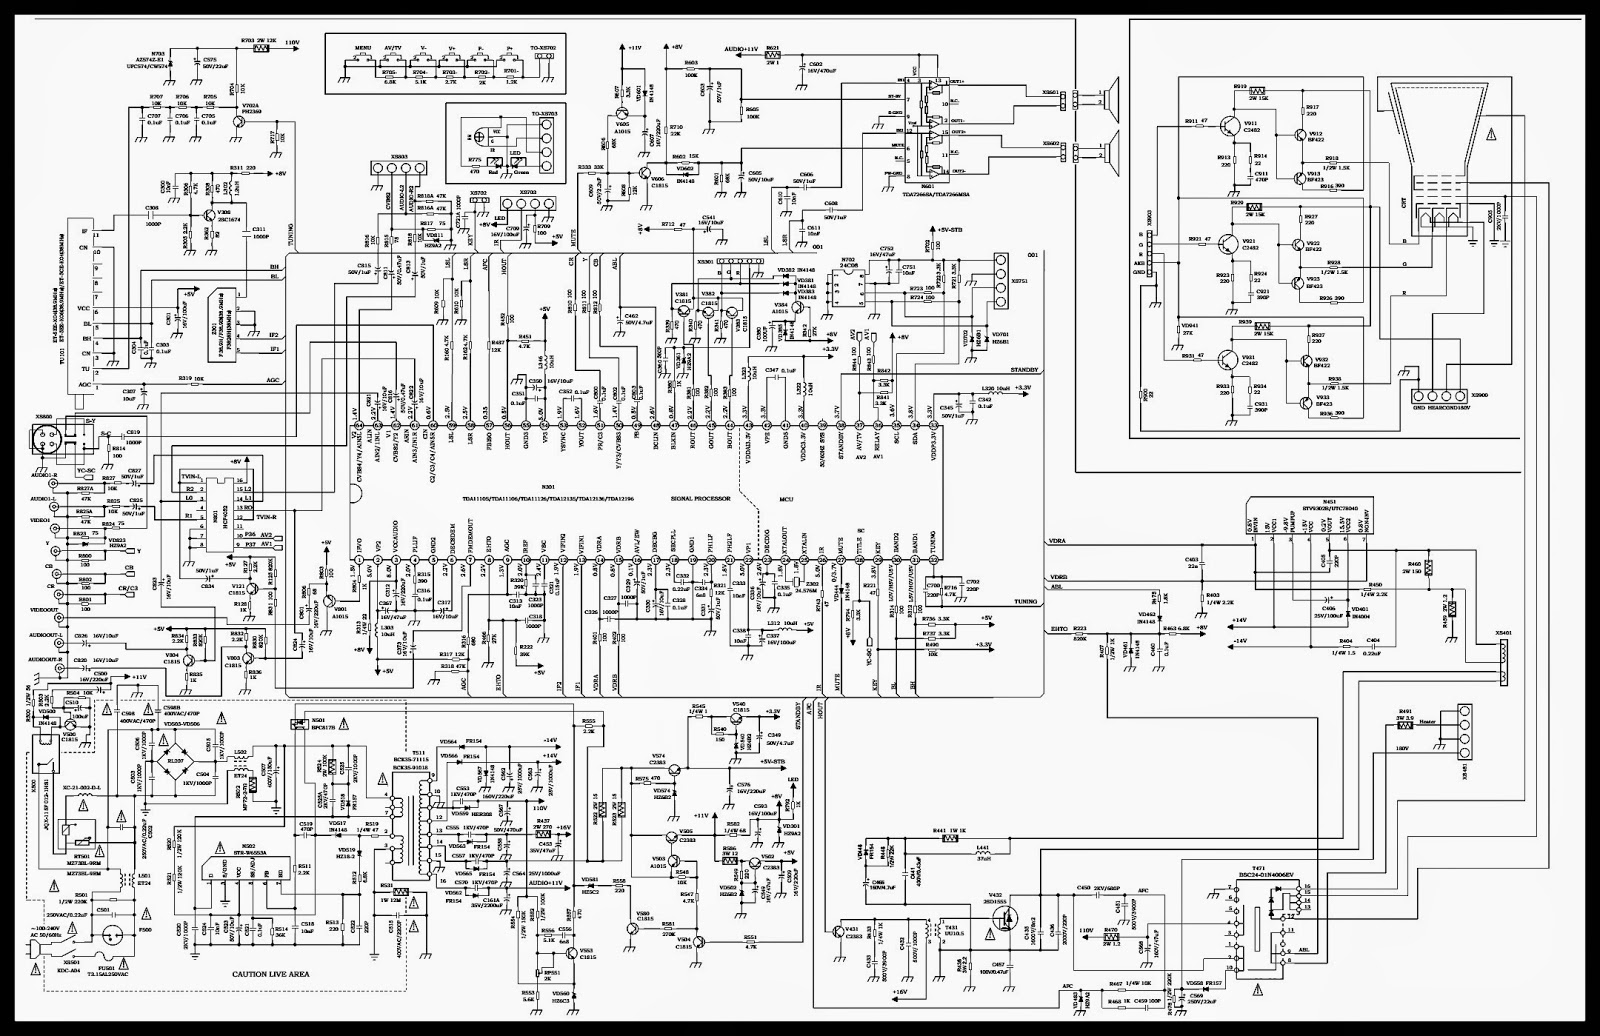 Processor Circuit Diagram